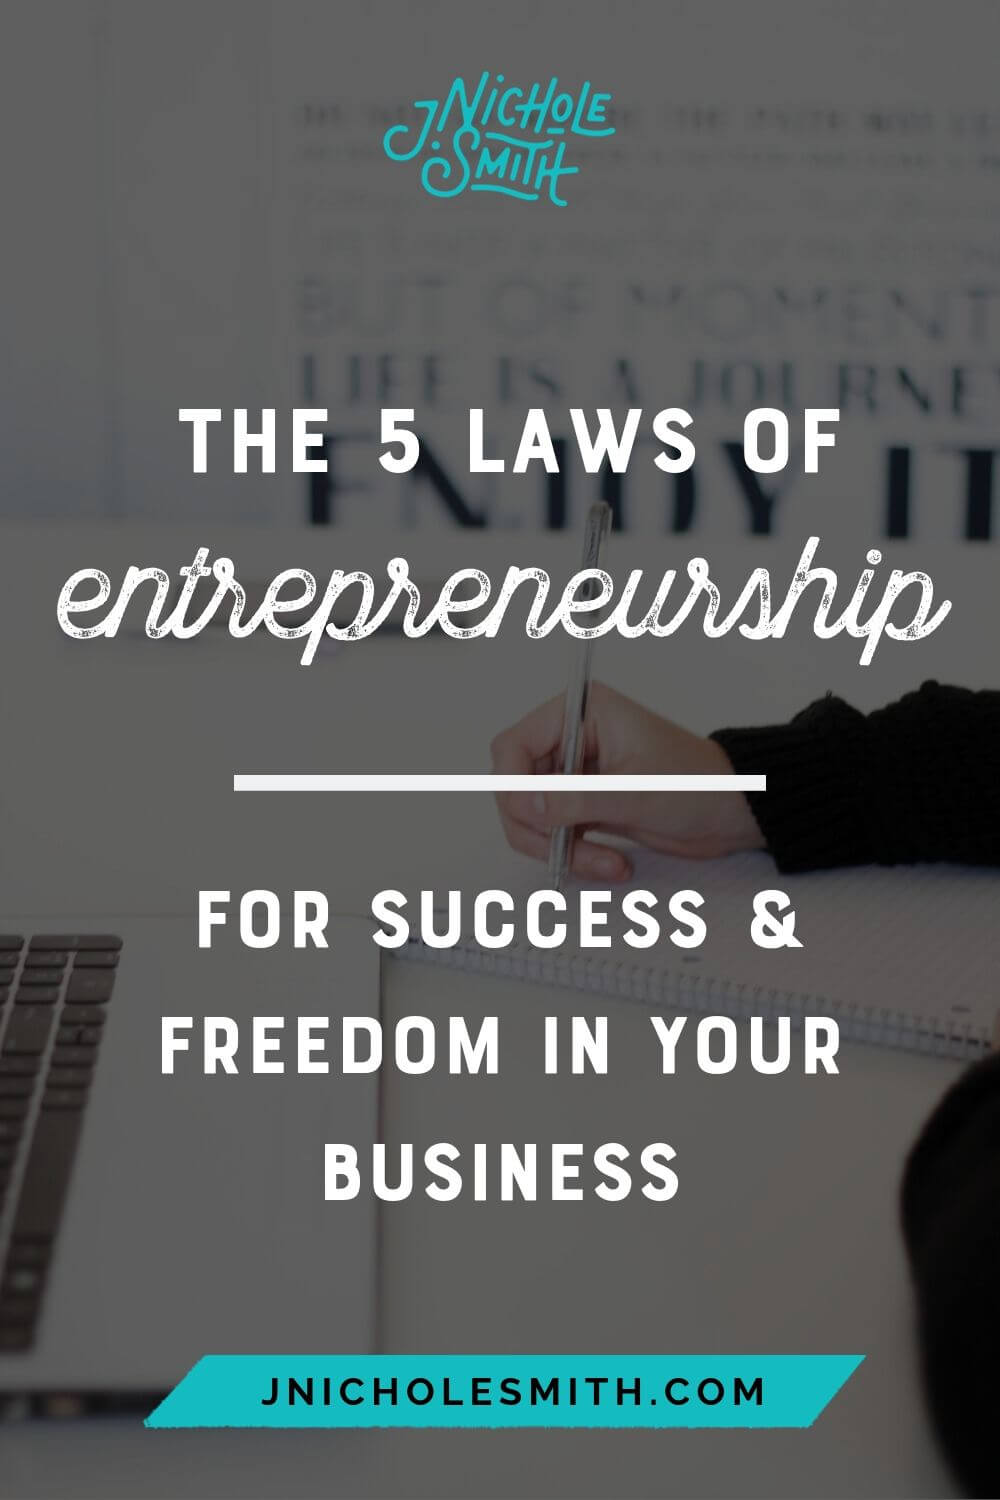 5 laws of business  pin image 2